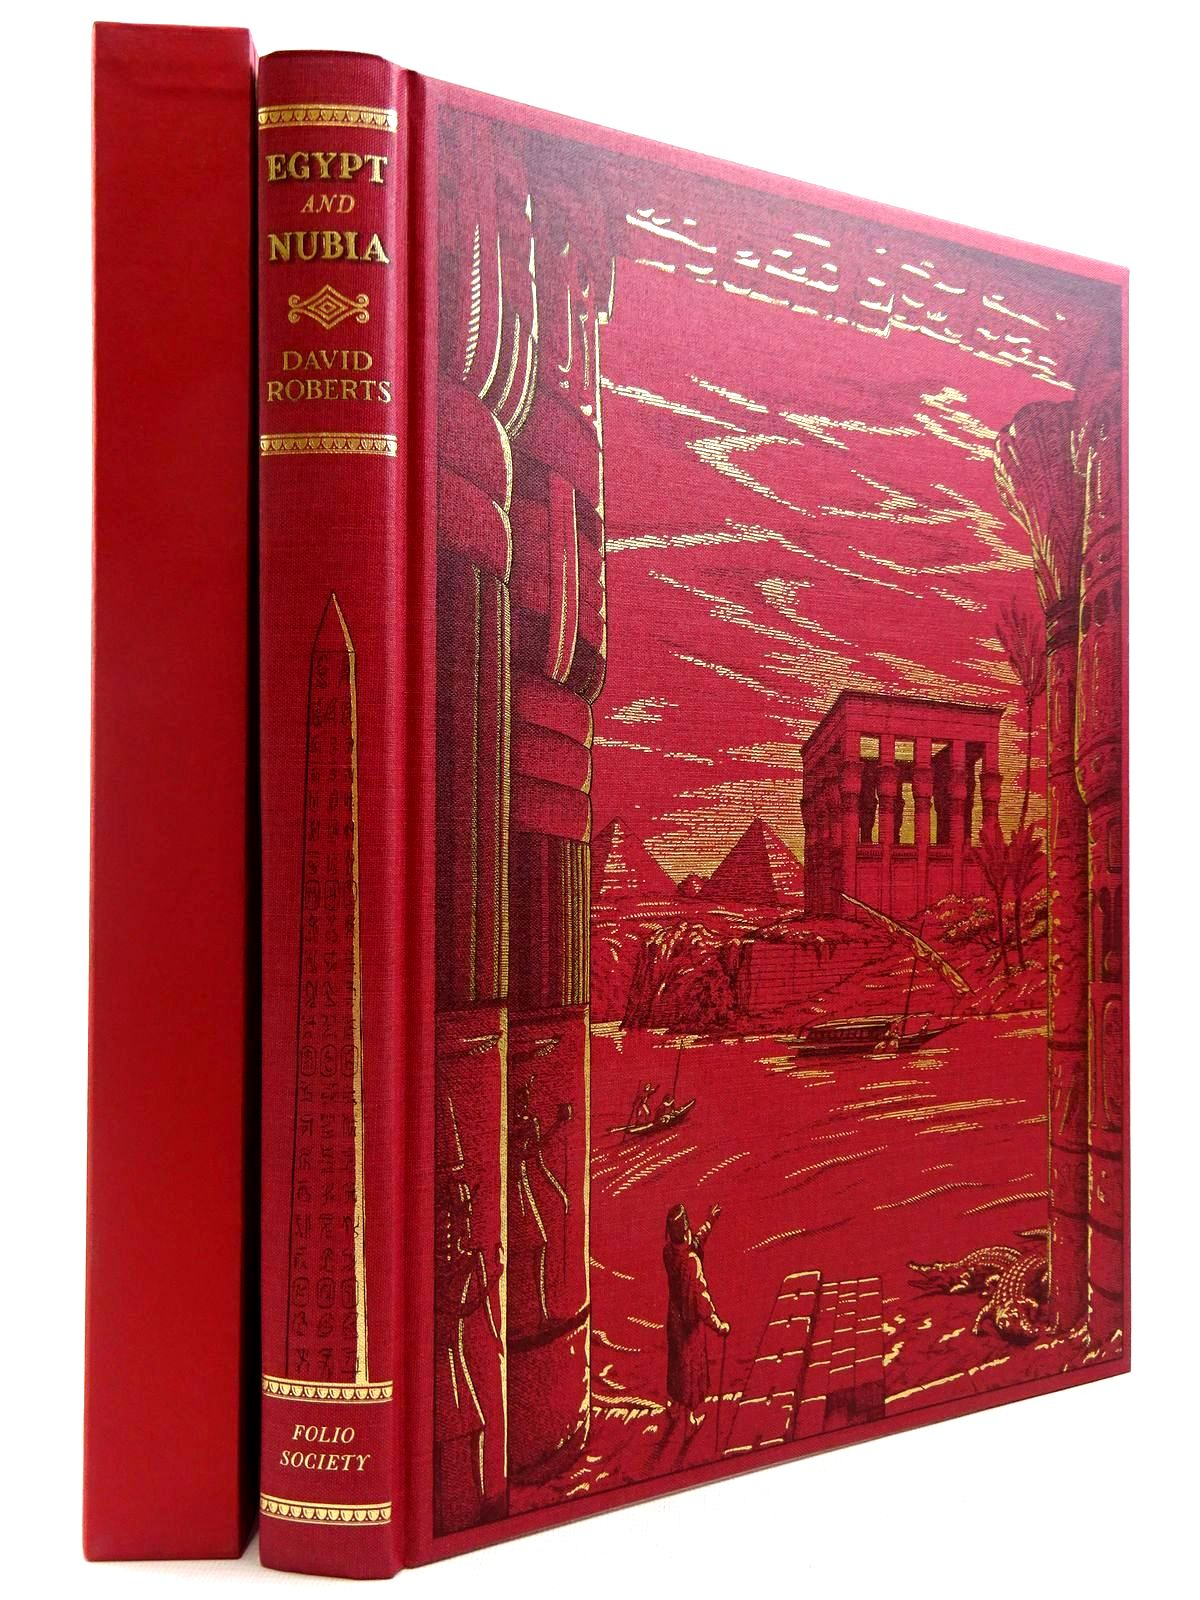 Photo of THE HOLY LAND, SYRIA, IDUMEA & ARABIA AND EGYPT AND NUBIA (2 VOLUMES) written by Roberts, David published by Folio Society (STOCK CODE: 2129192)  for sale by Stella & Rose's Books